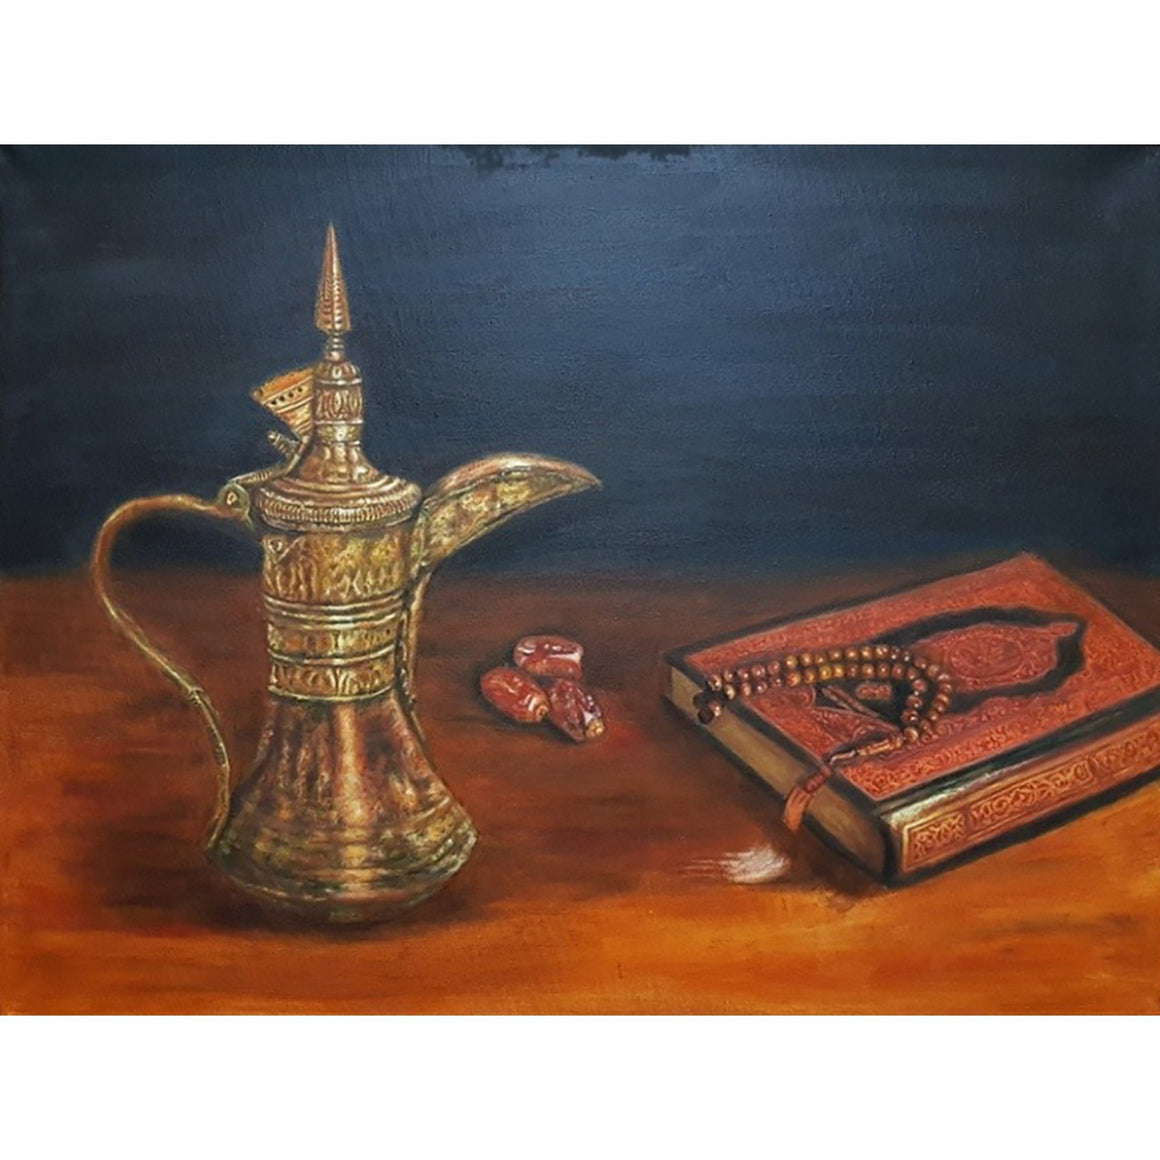 Arabic coffee pot beside the dates, Quran and prayer beads on the table